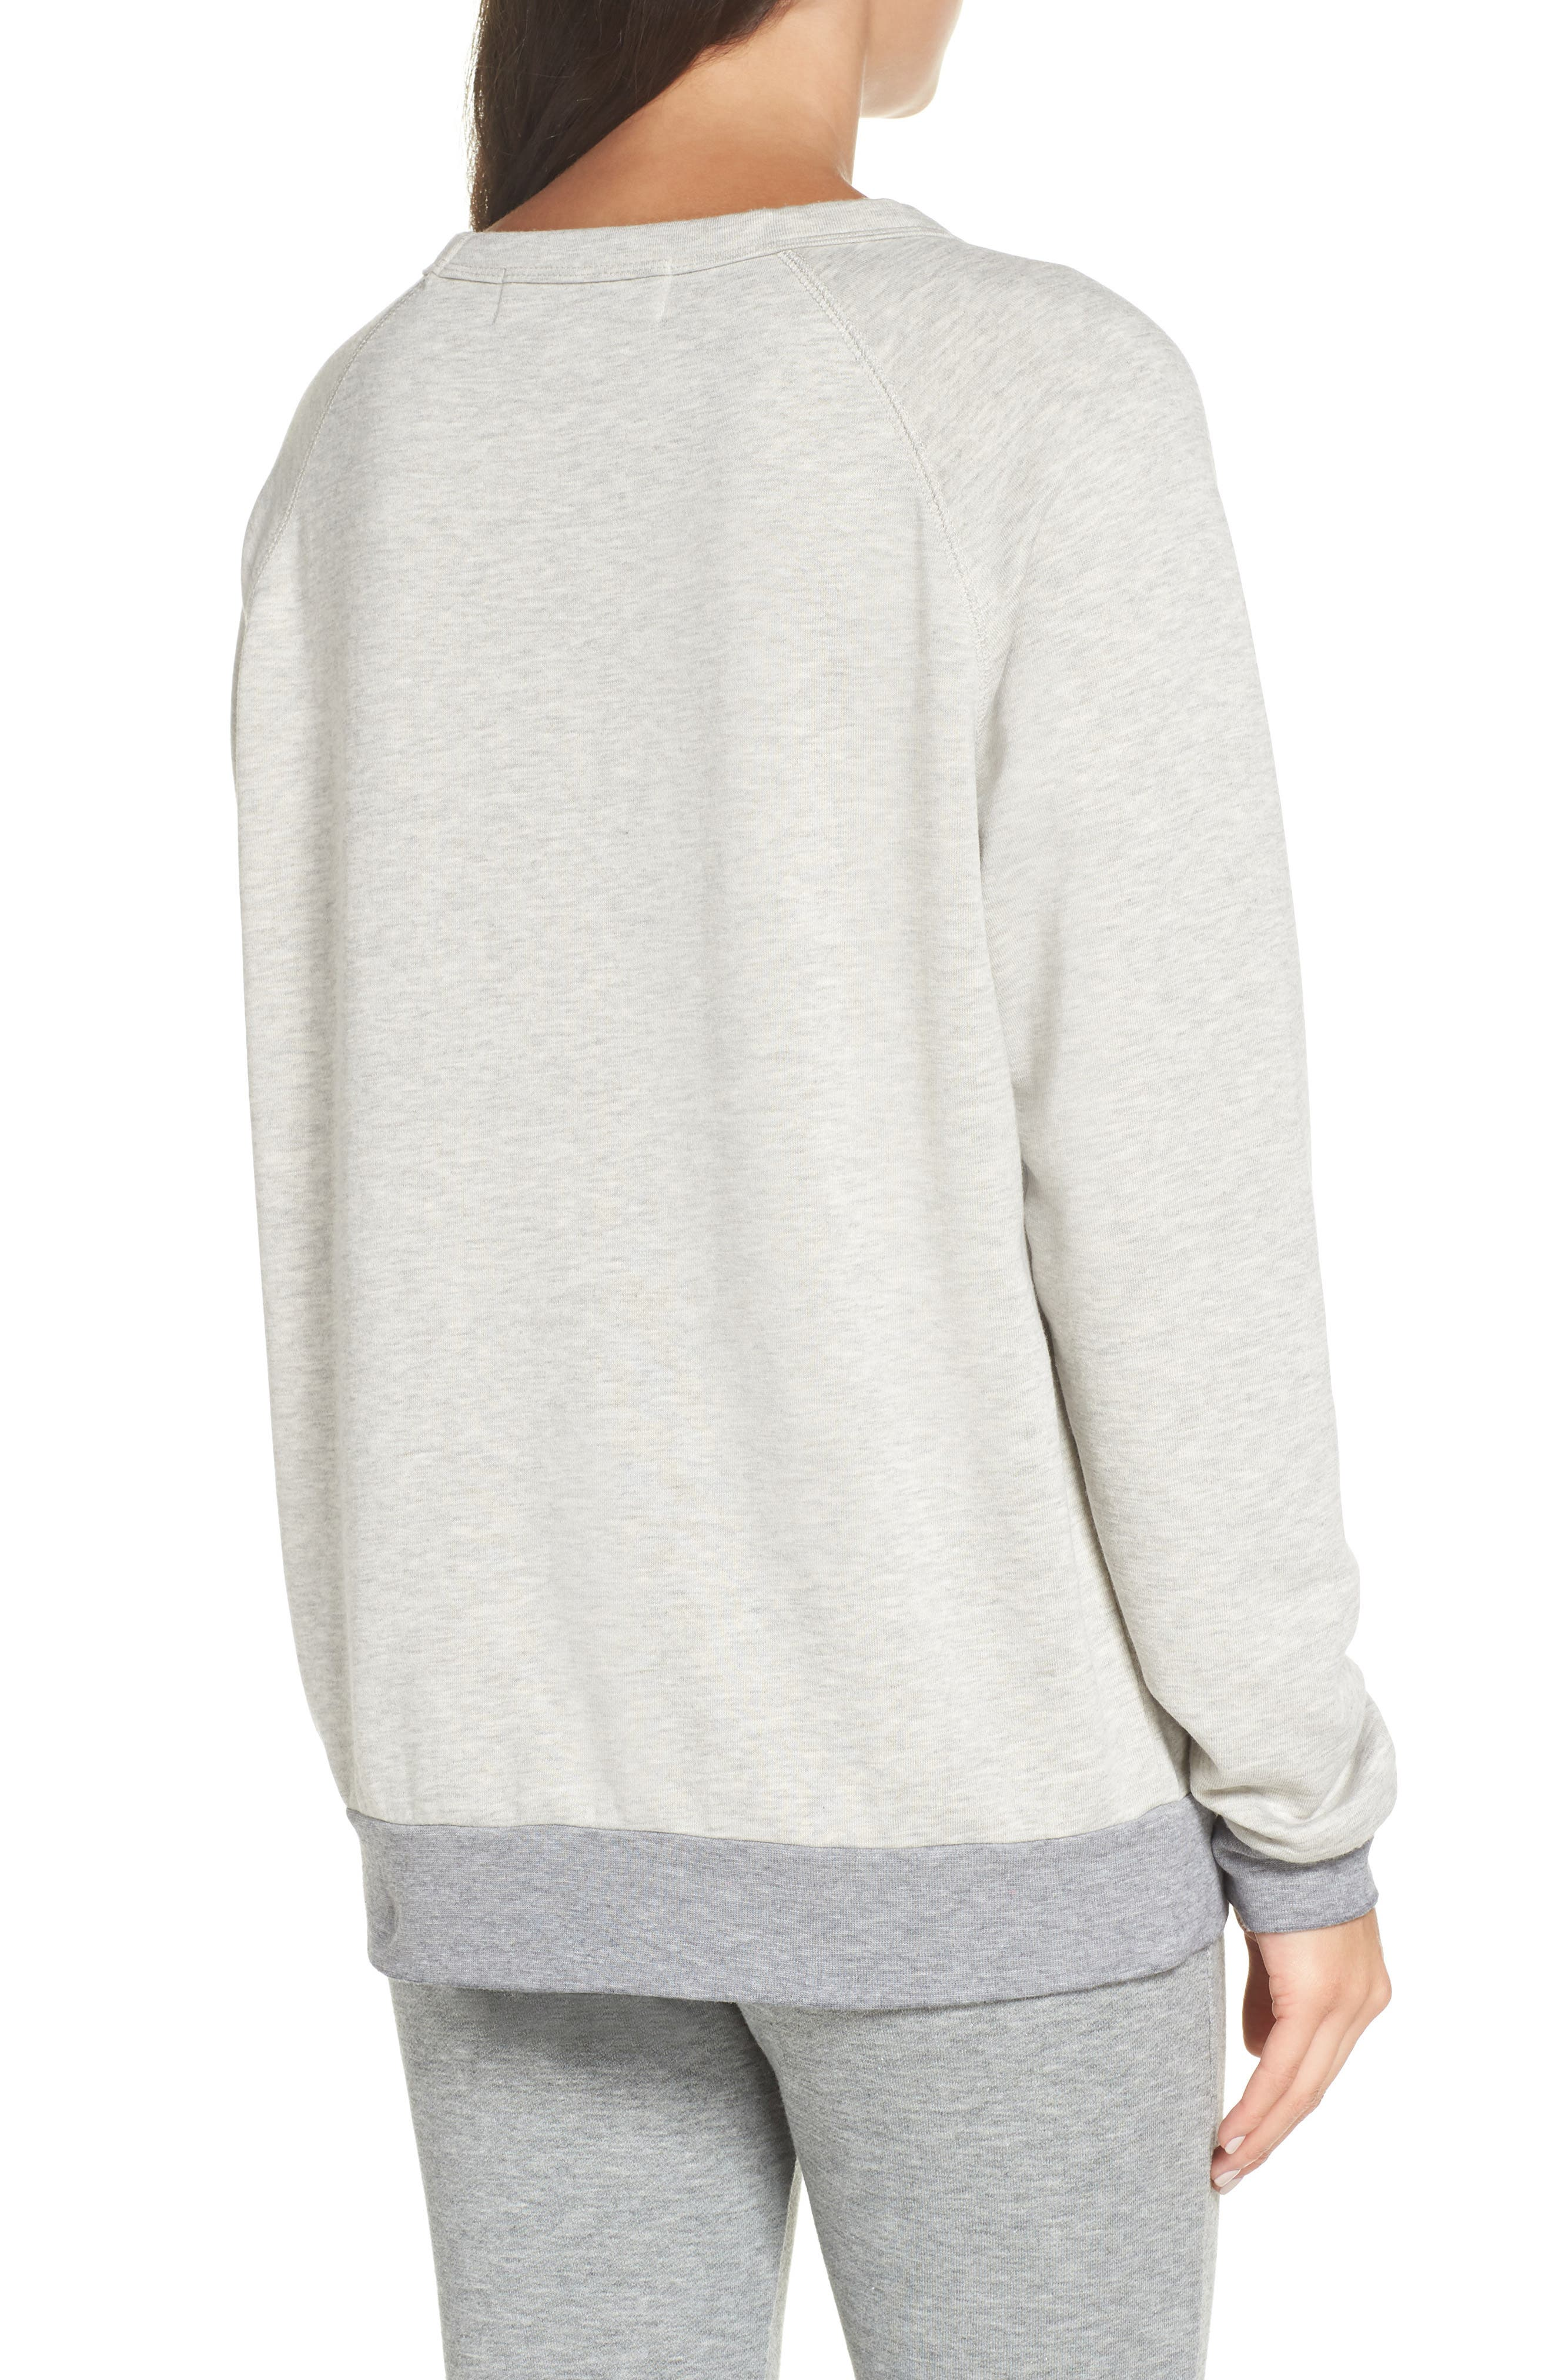 Airplane Mode Cozy Lounge Sweatshirt,                             Alternate thumbnail 2, color,                             Pebble Heather